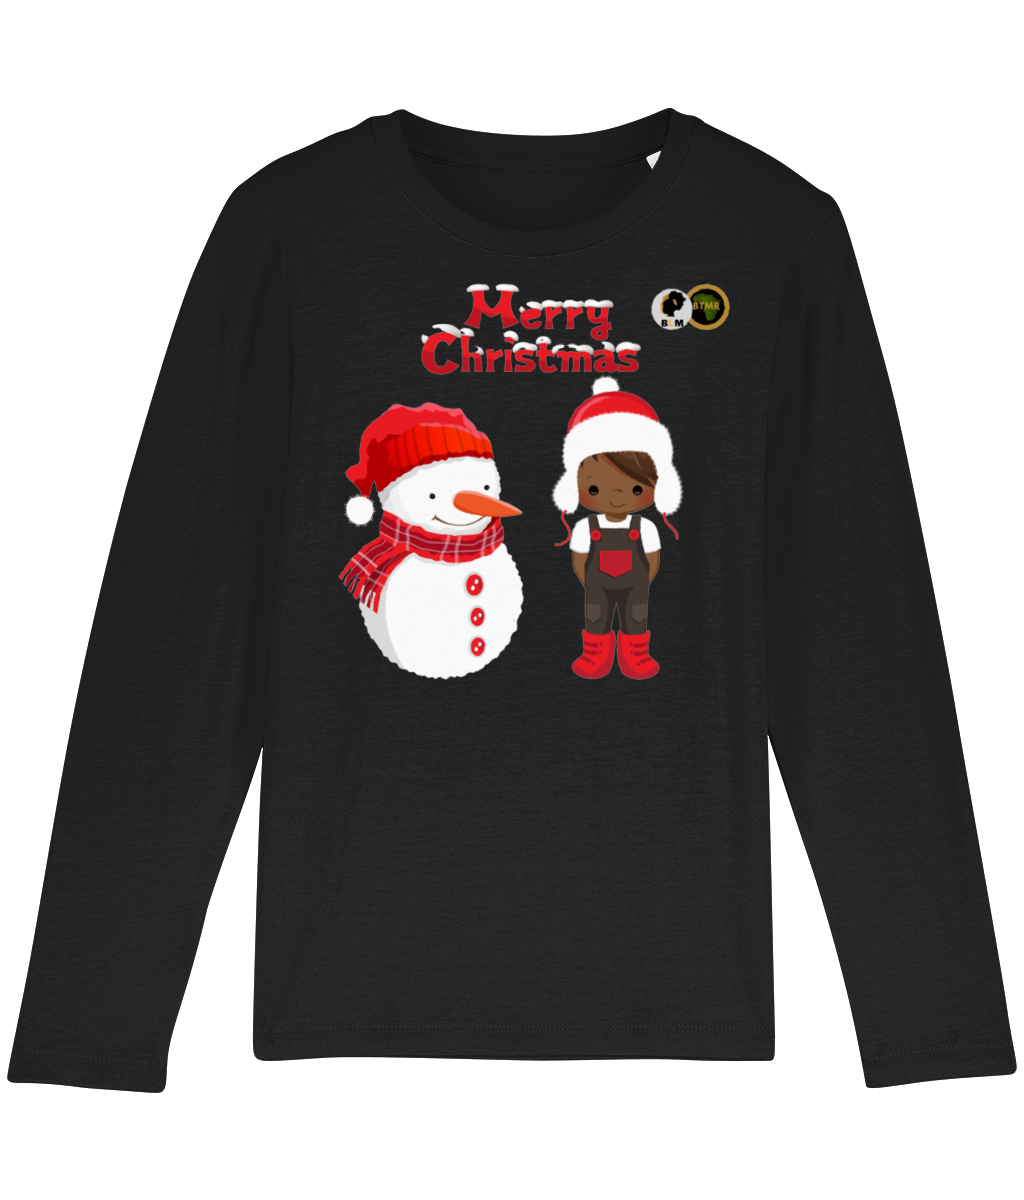 Long Sleeve T Shirt - Boy & Snowman